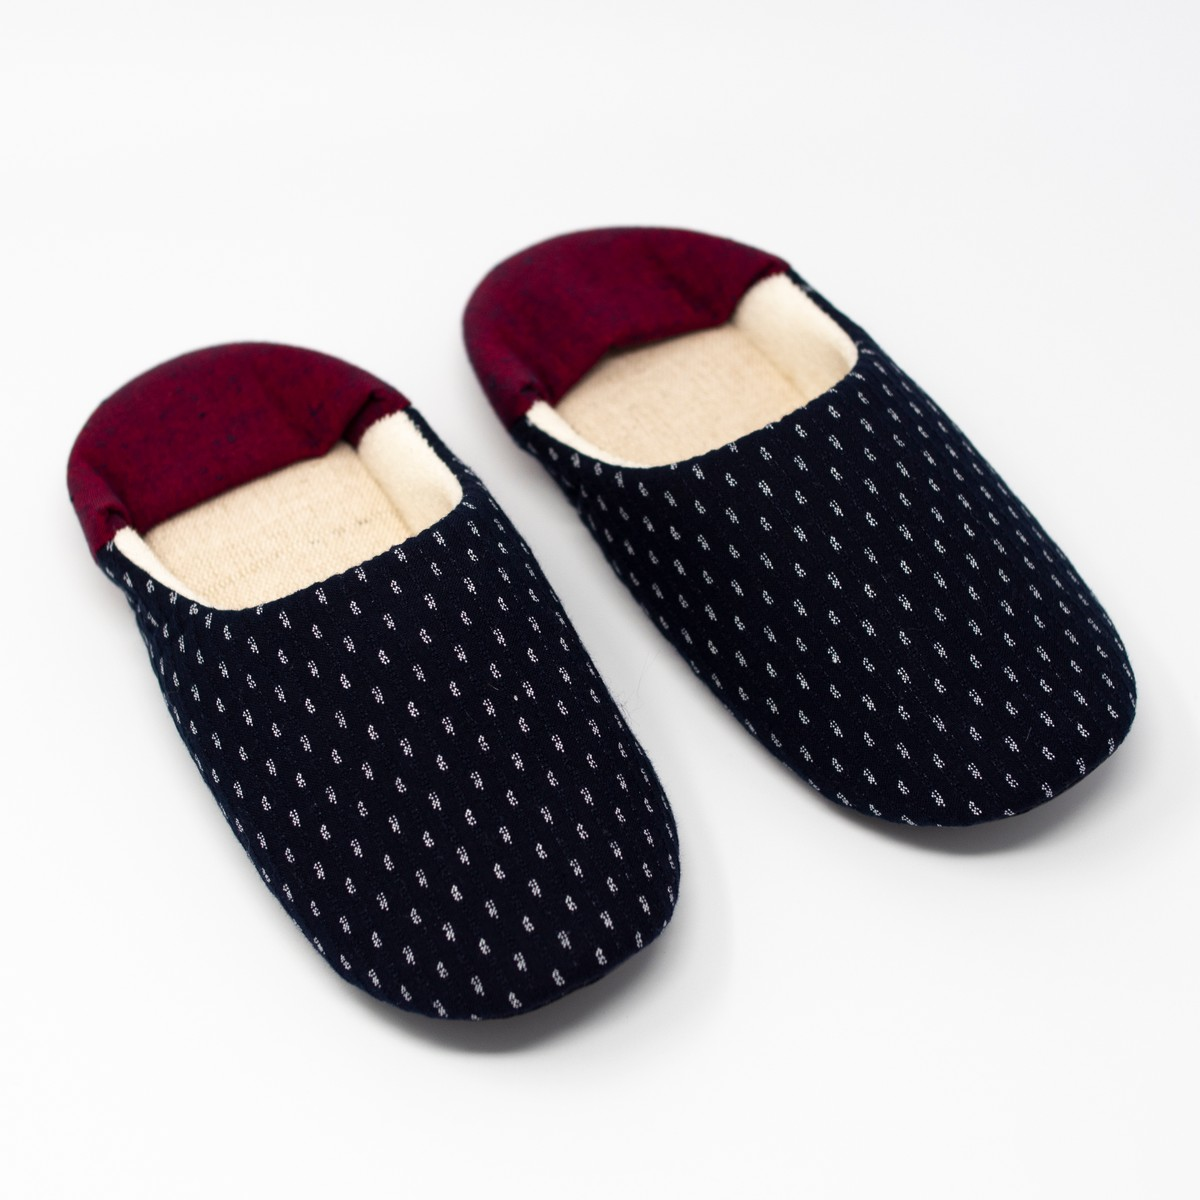 Photo of Red Kasuri Babouche Slippers